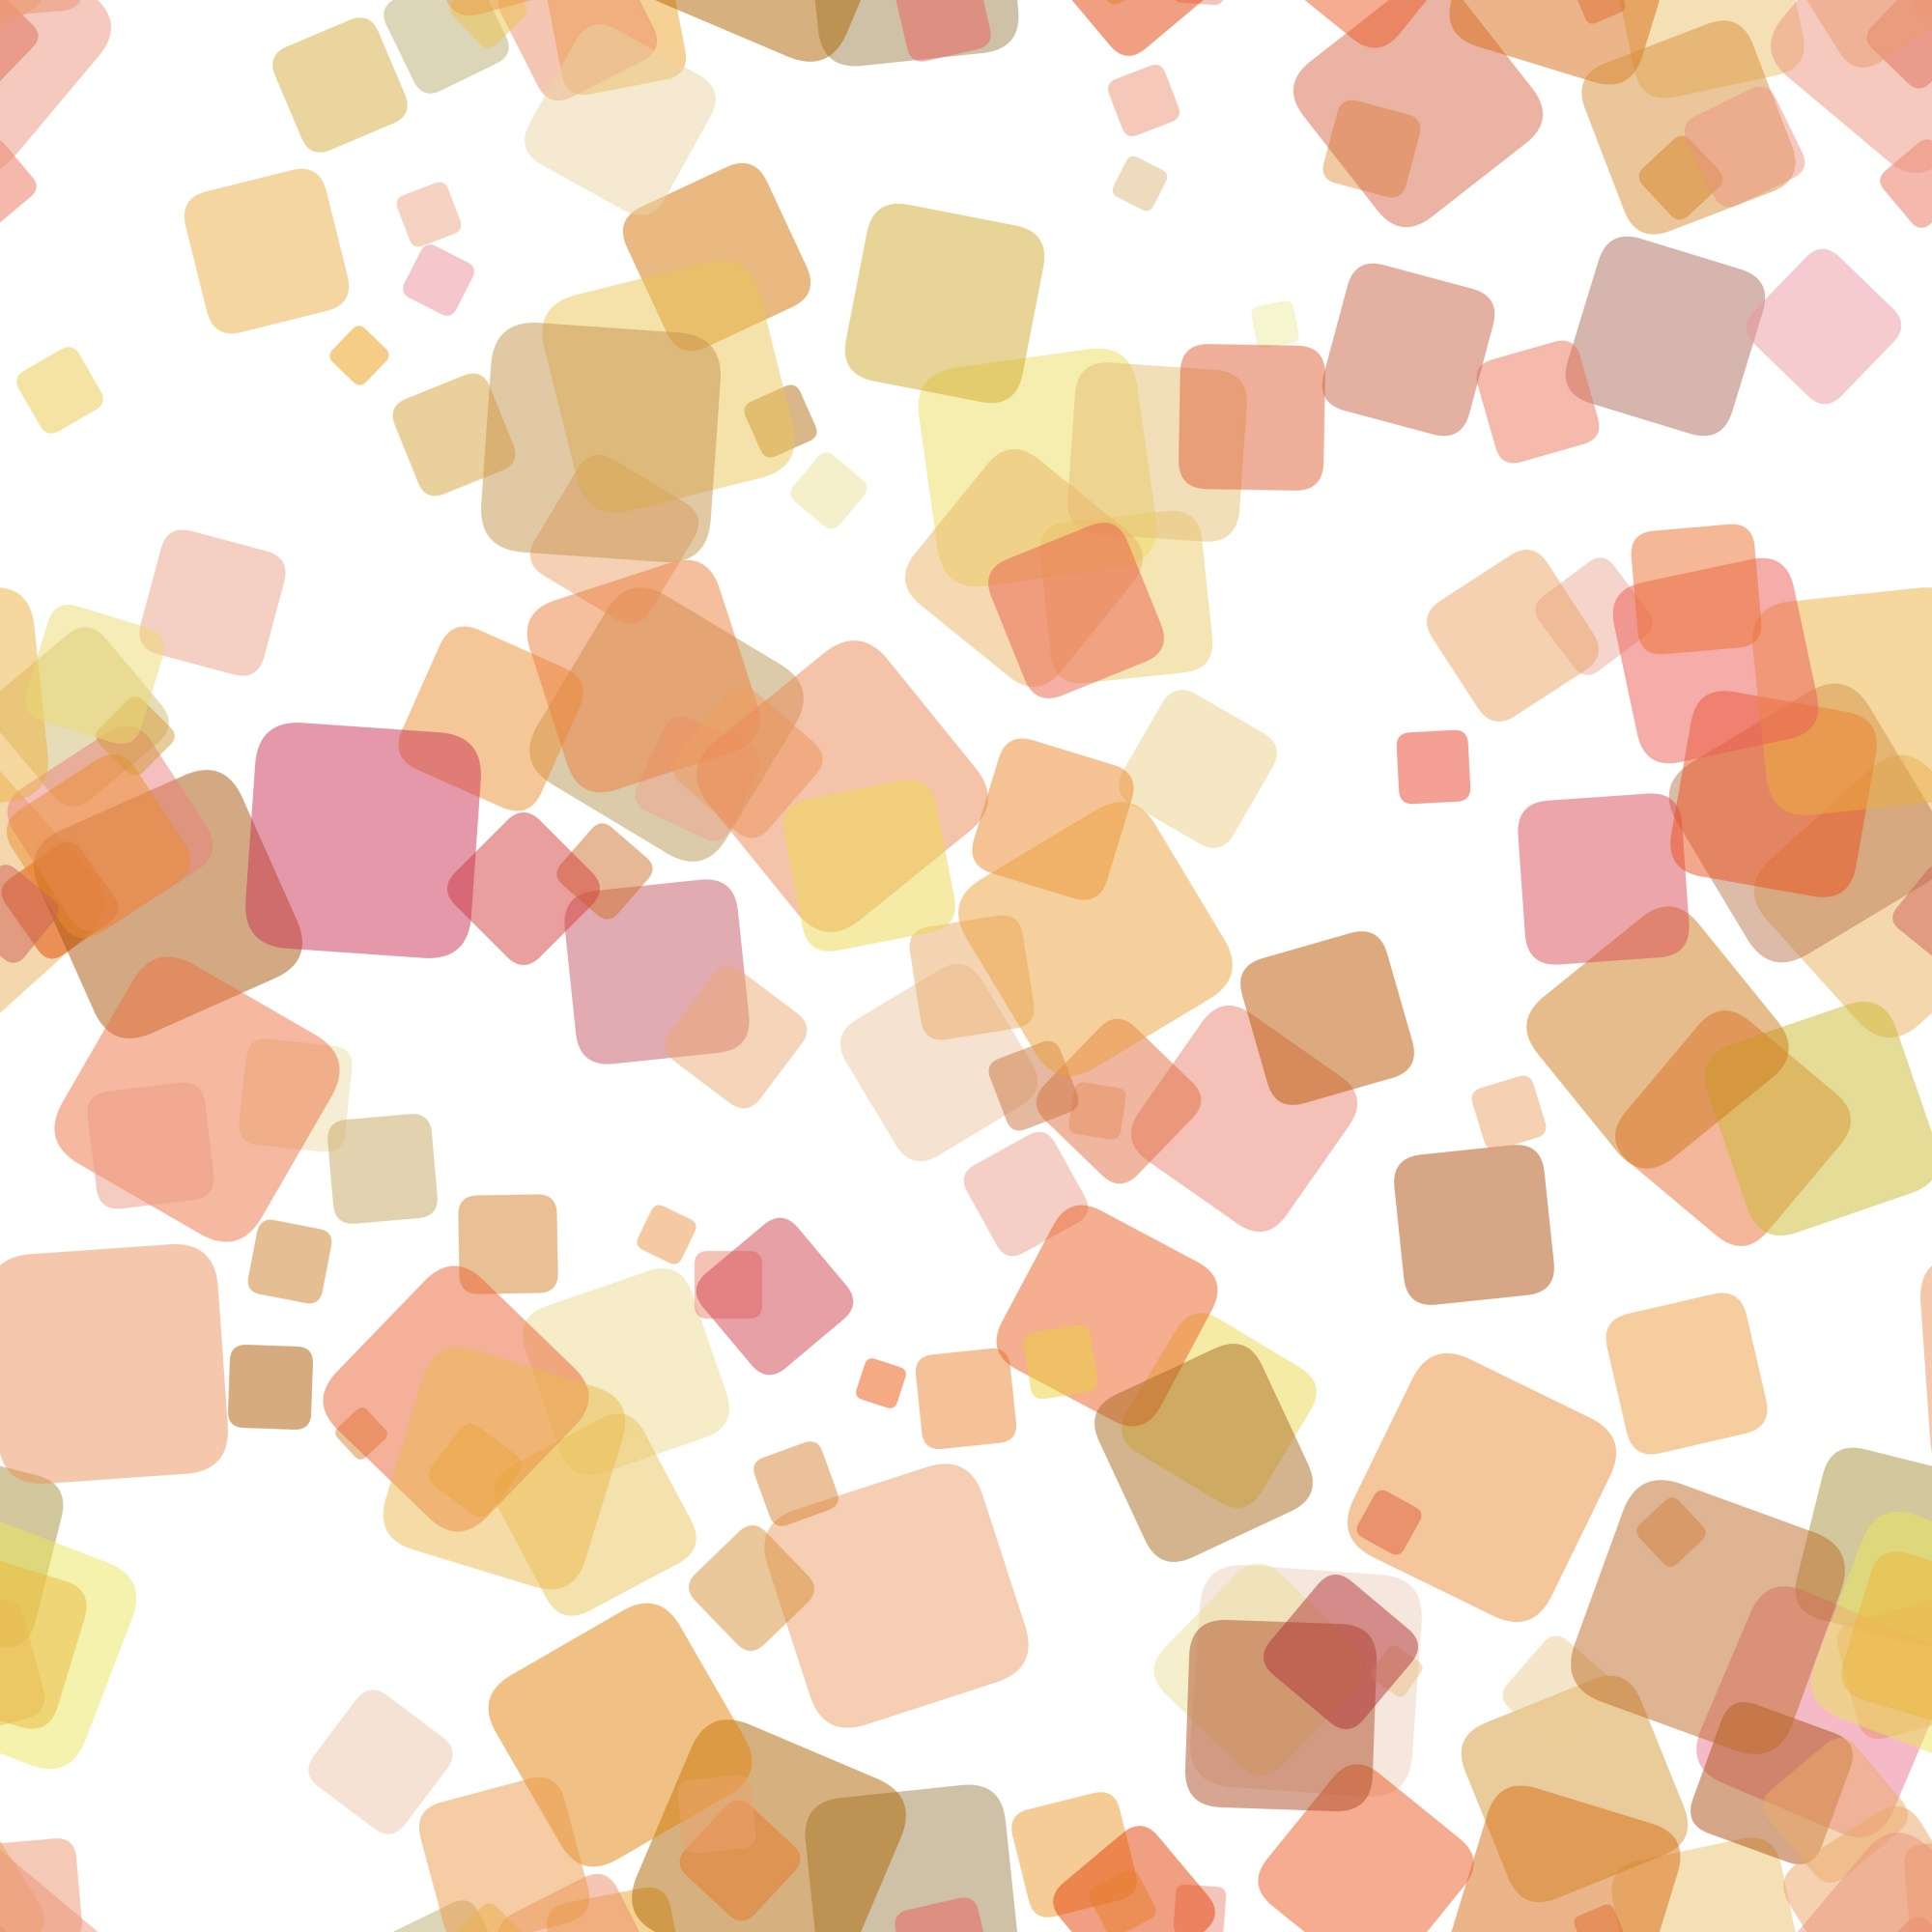 Seamless abstract geometric square pattern background - vector illustration from random rotated squares